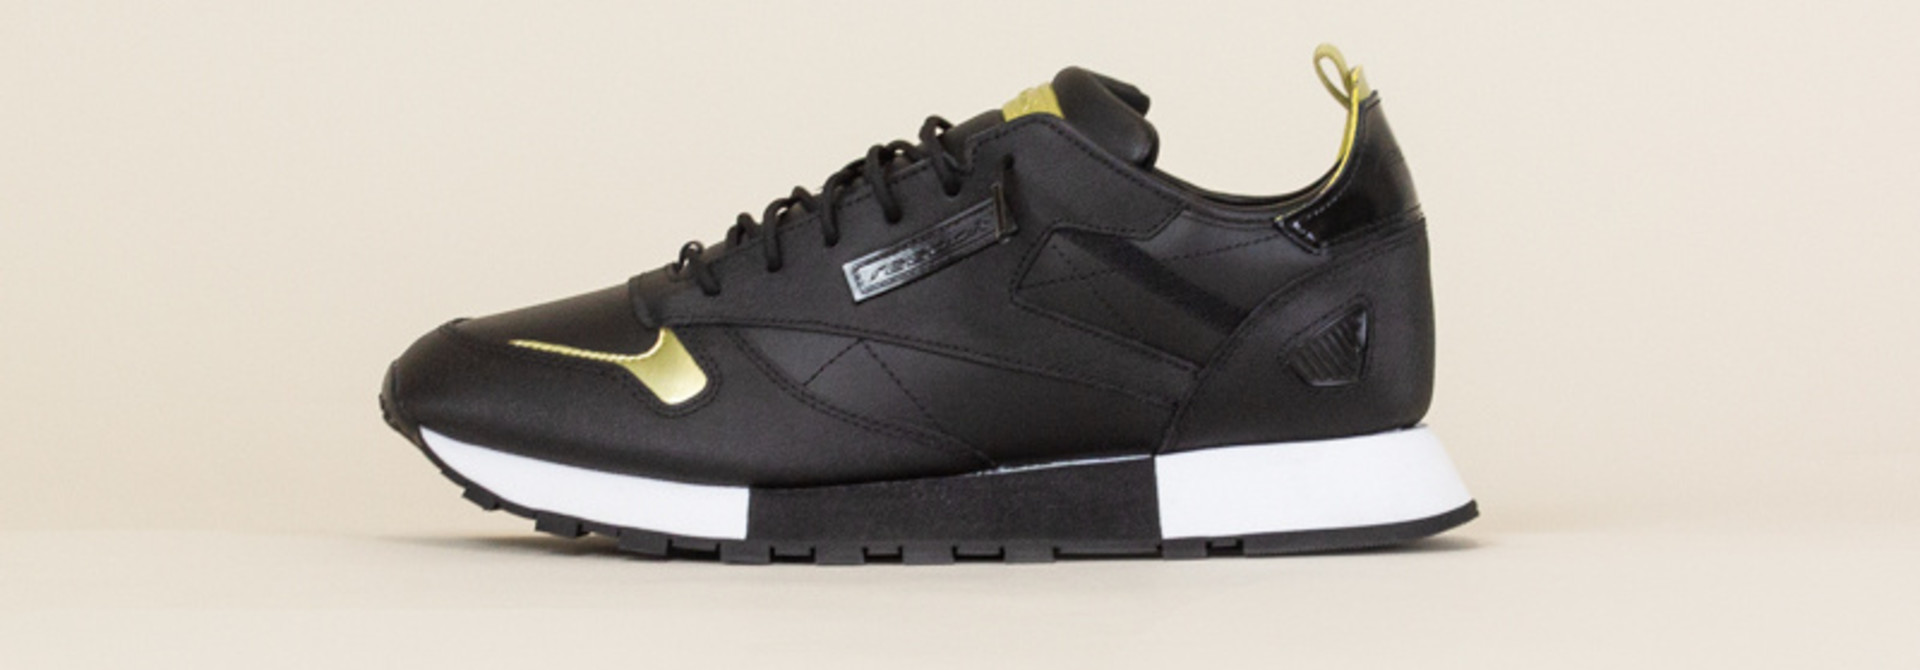 Reebok Classic Leather Reedux - Black/Gold